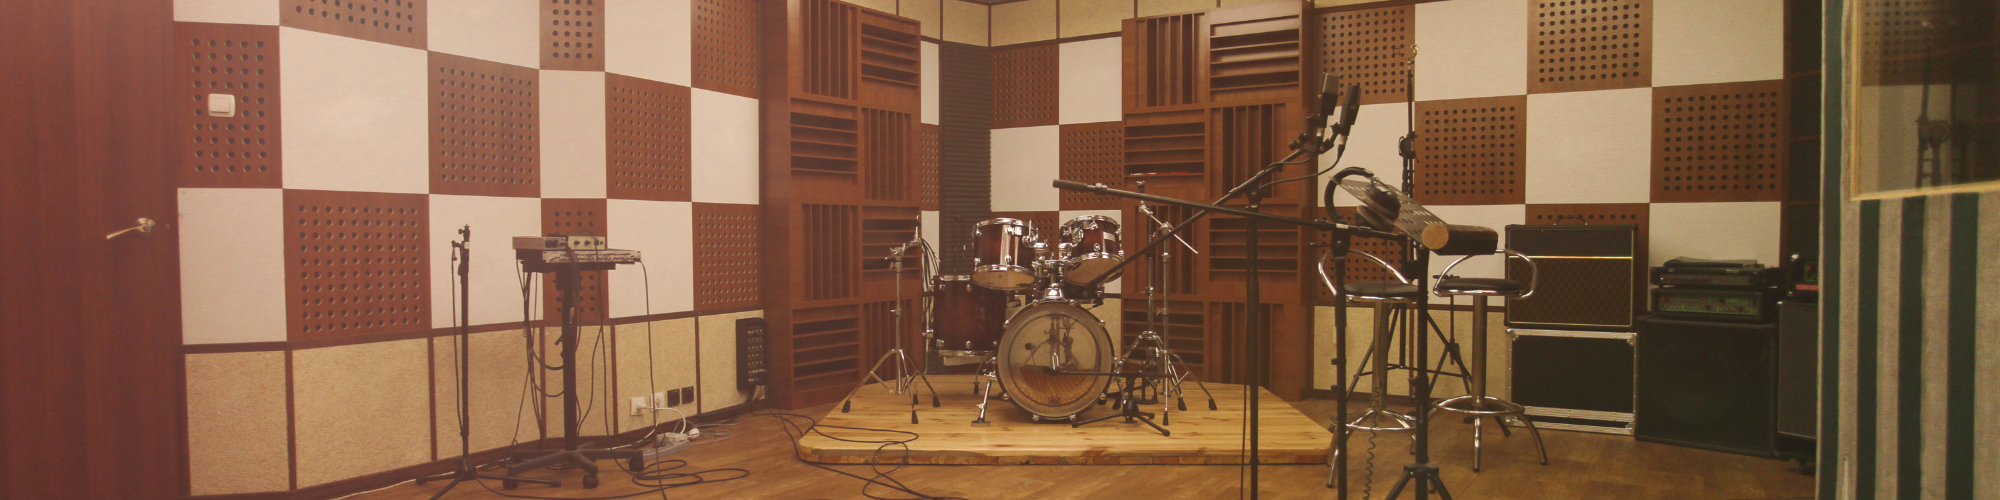 music room with drums and microphones